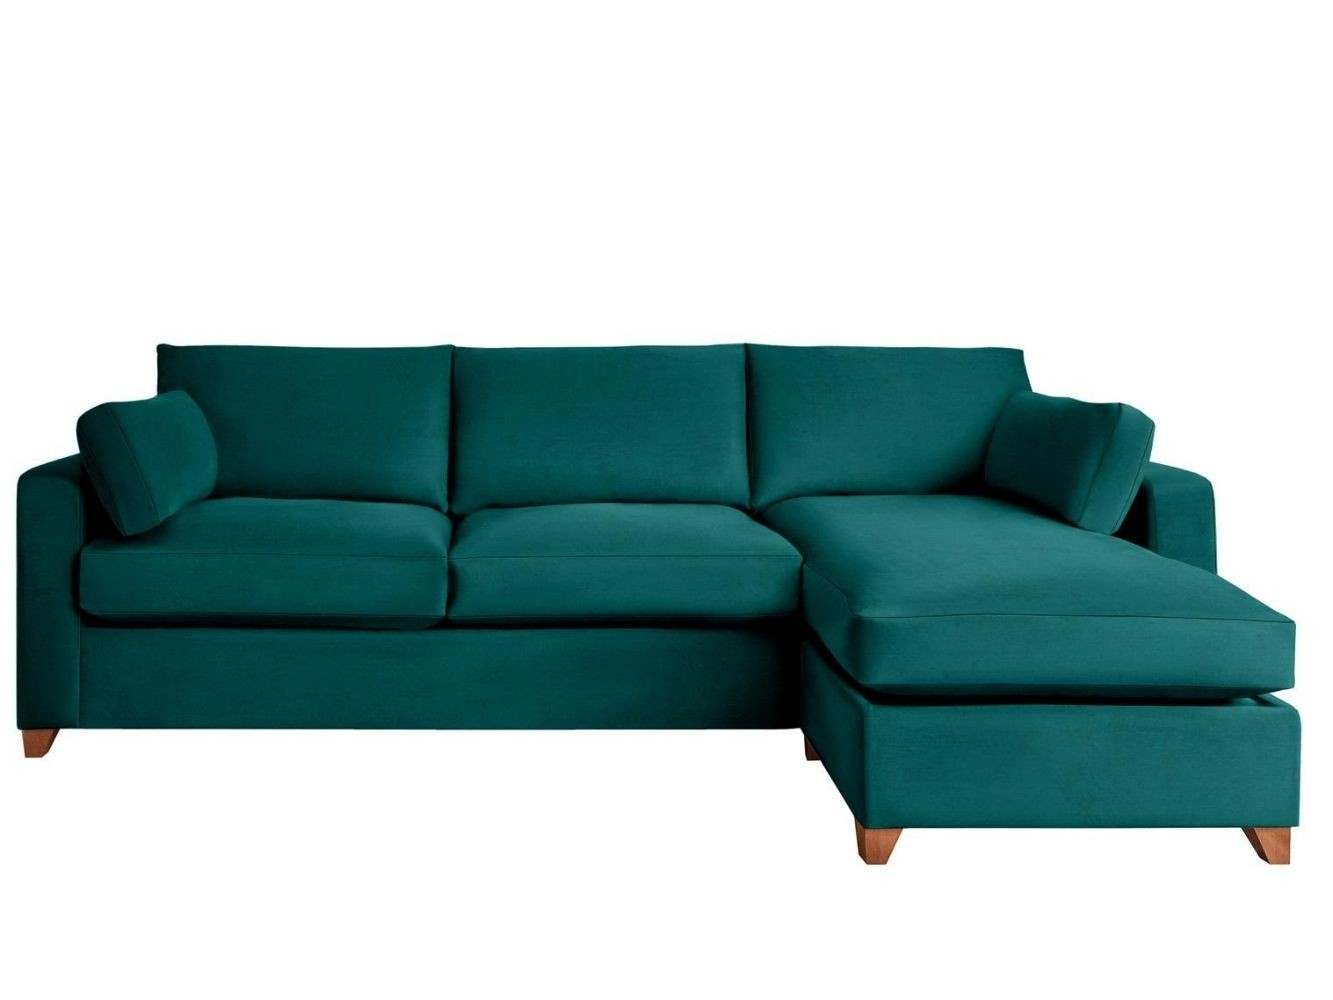 This is how I look in House Velvet Emerald with siliconized hollow fibre seat cushions